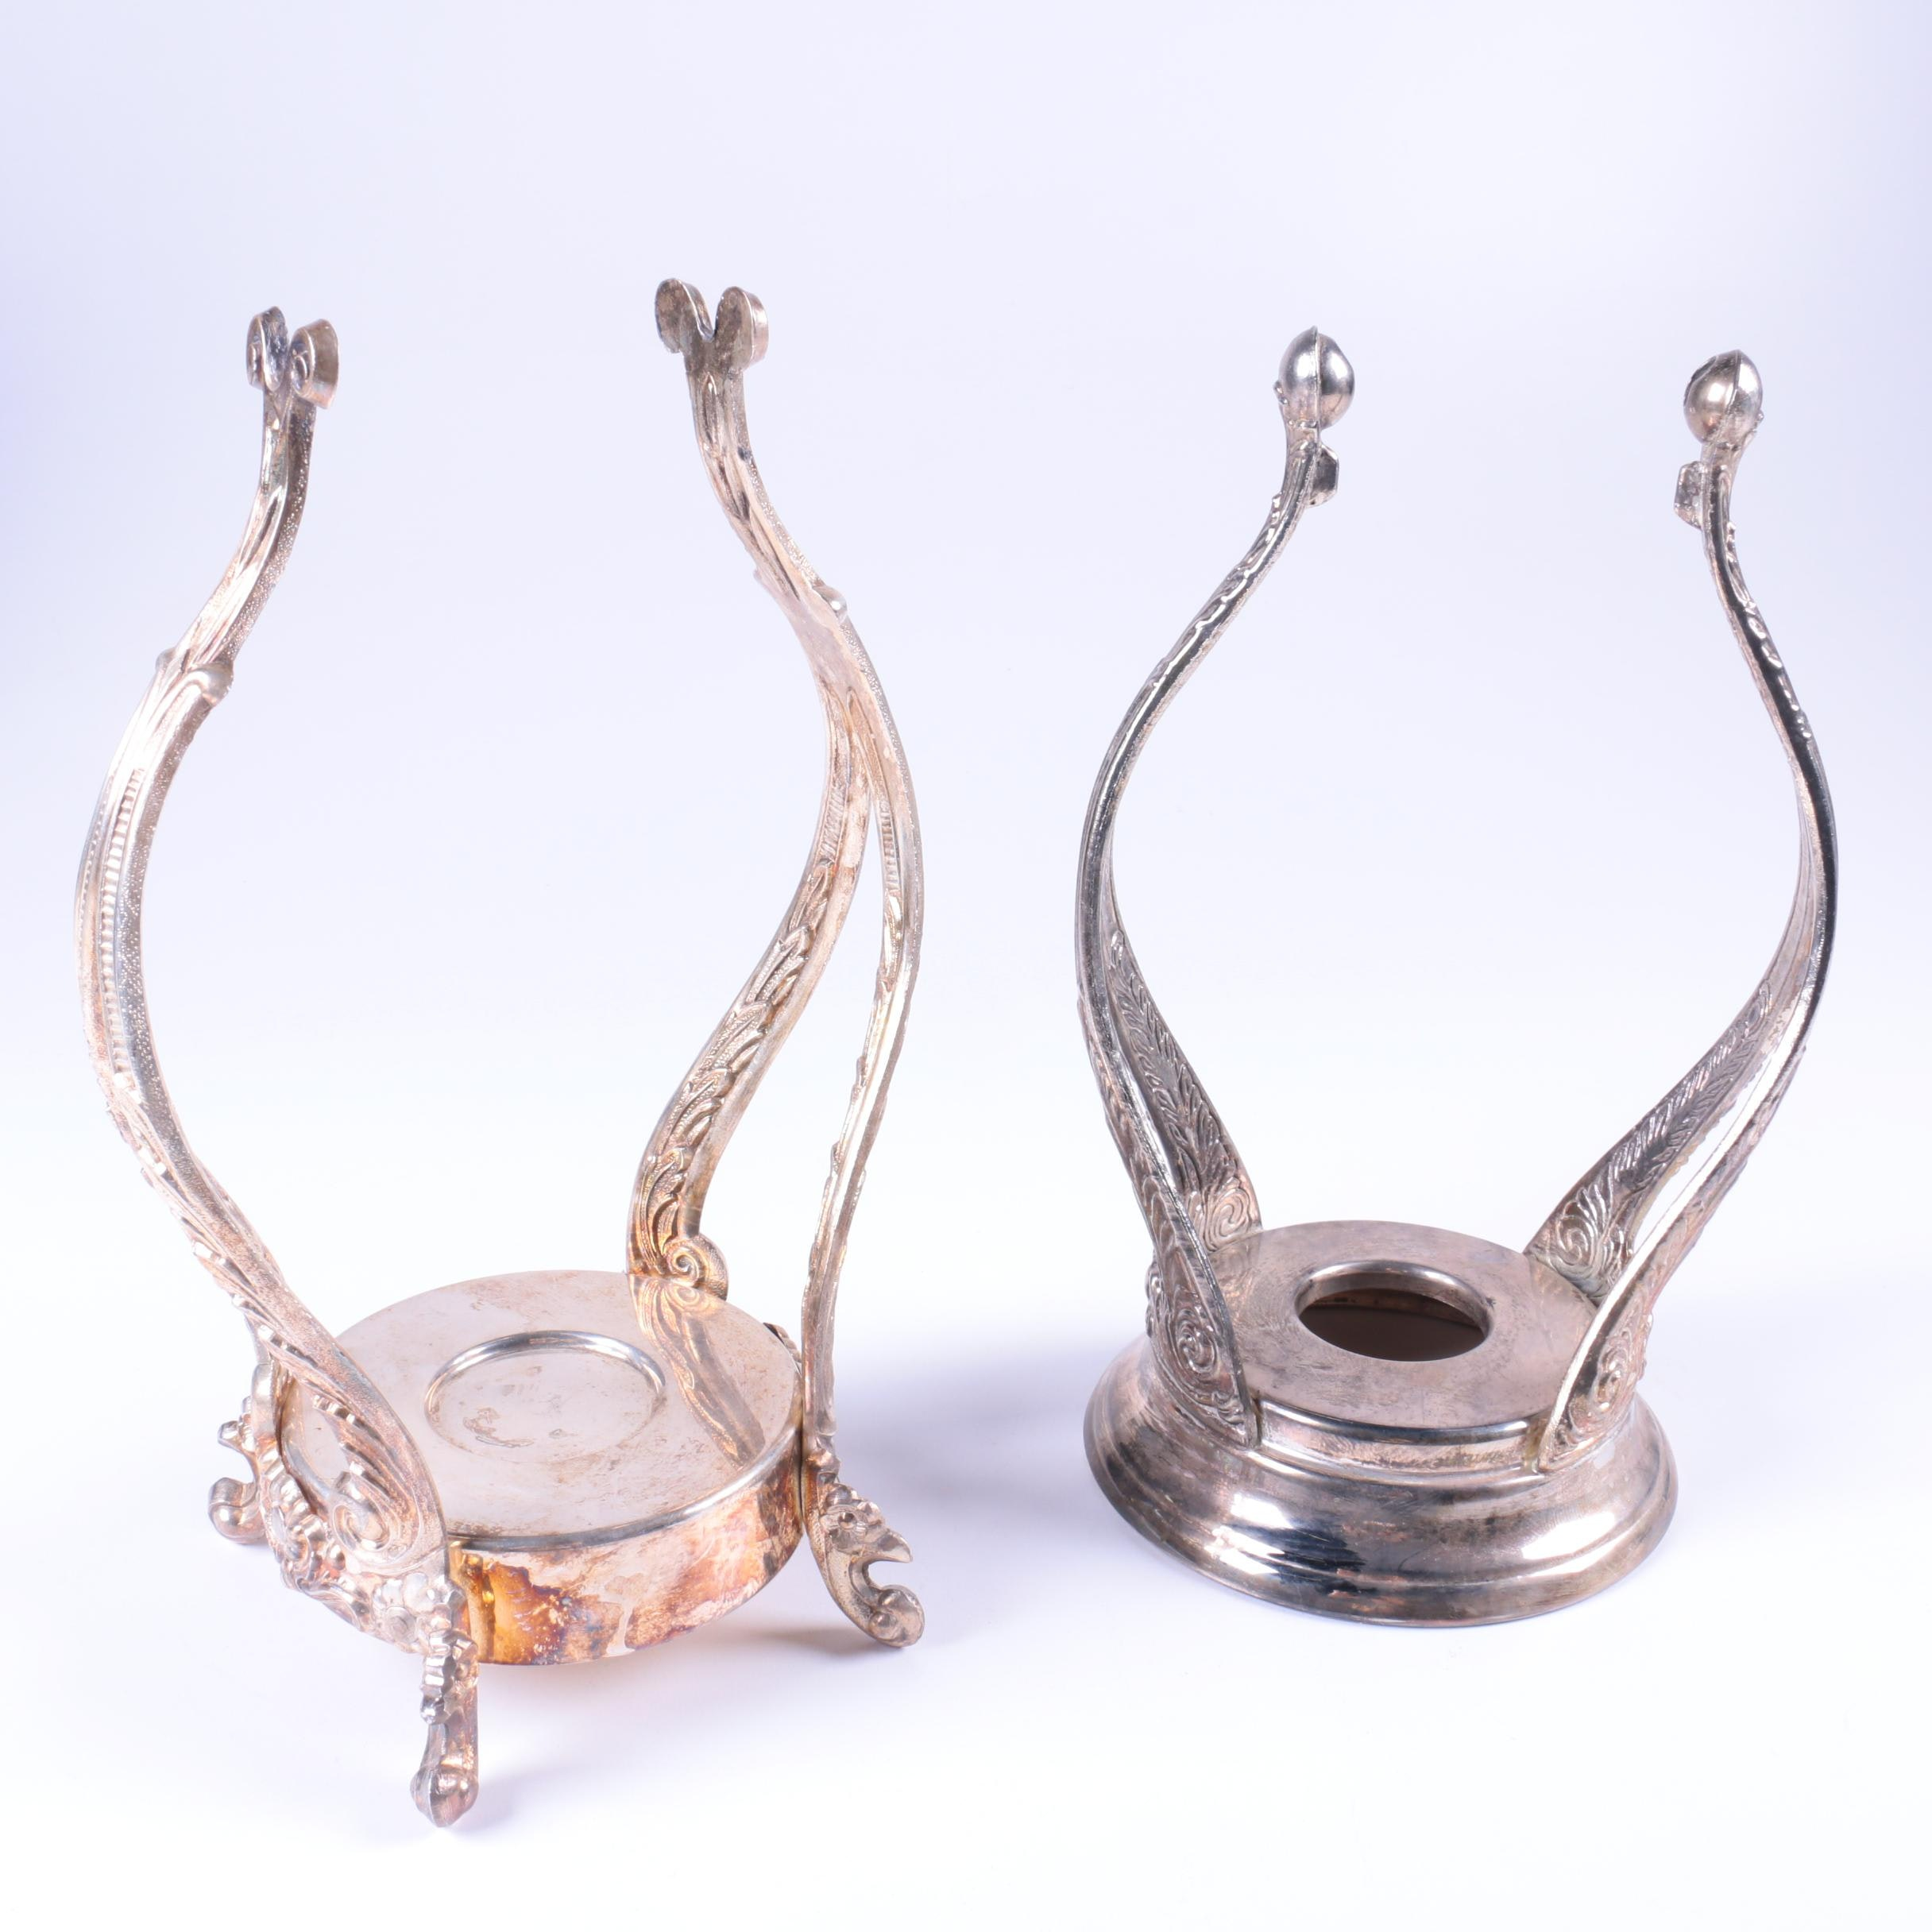 English Silver Mfg. Corp. and Other Silver-Plated Teapot Stands